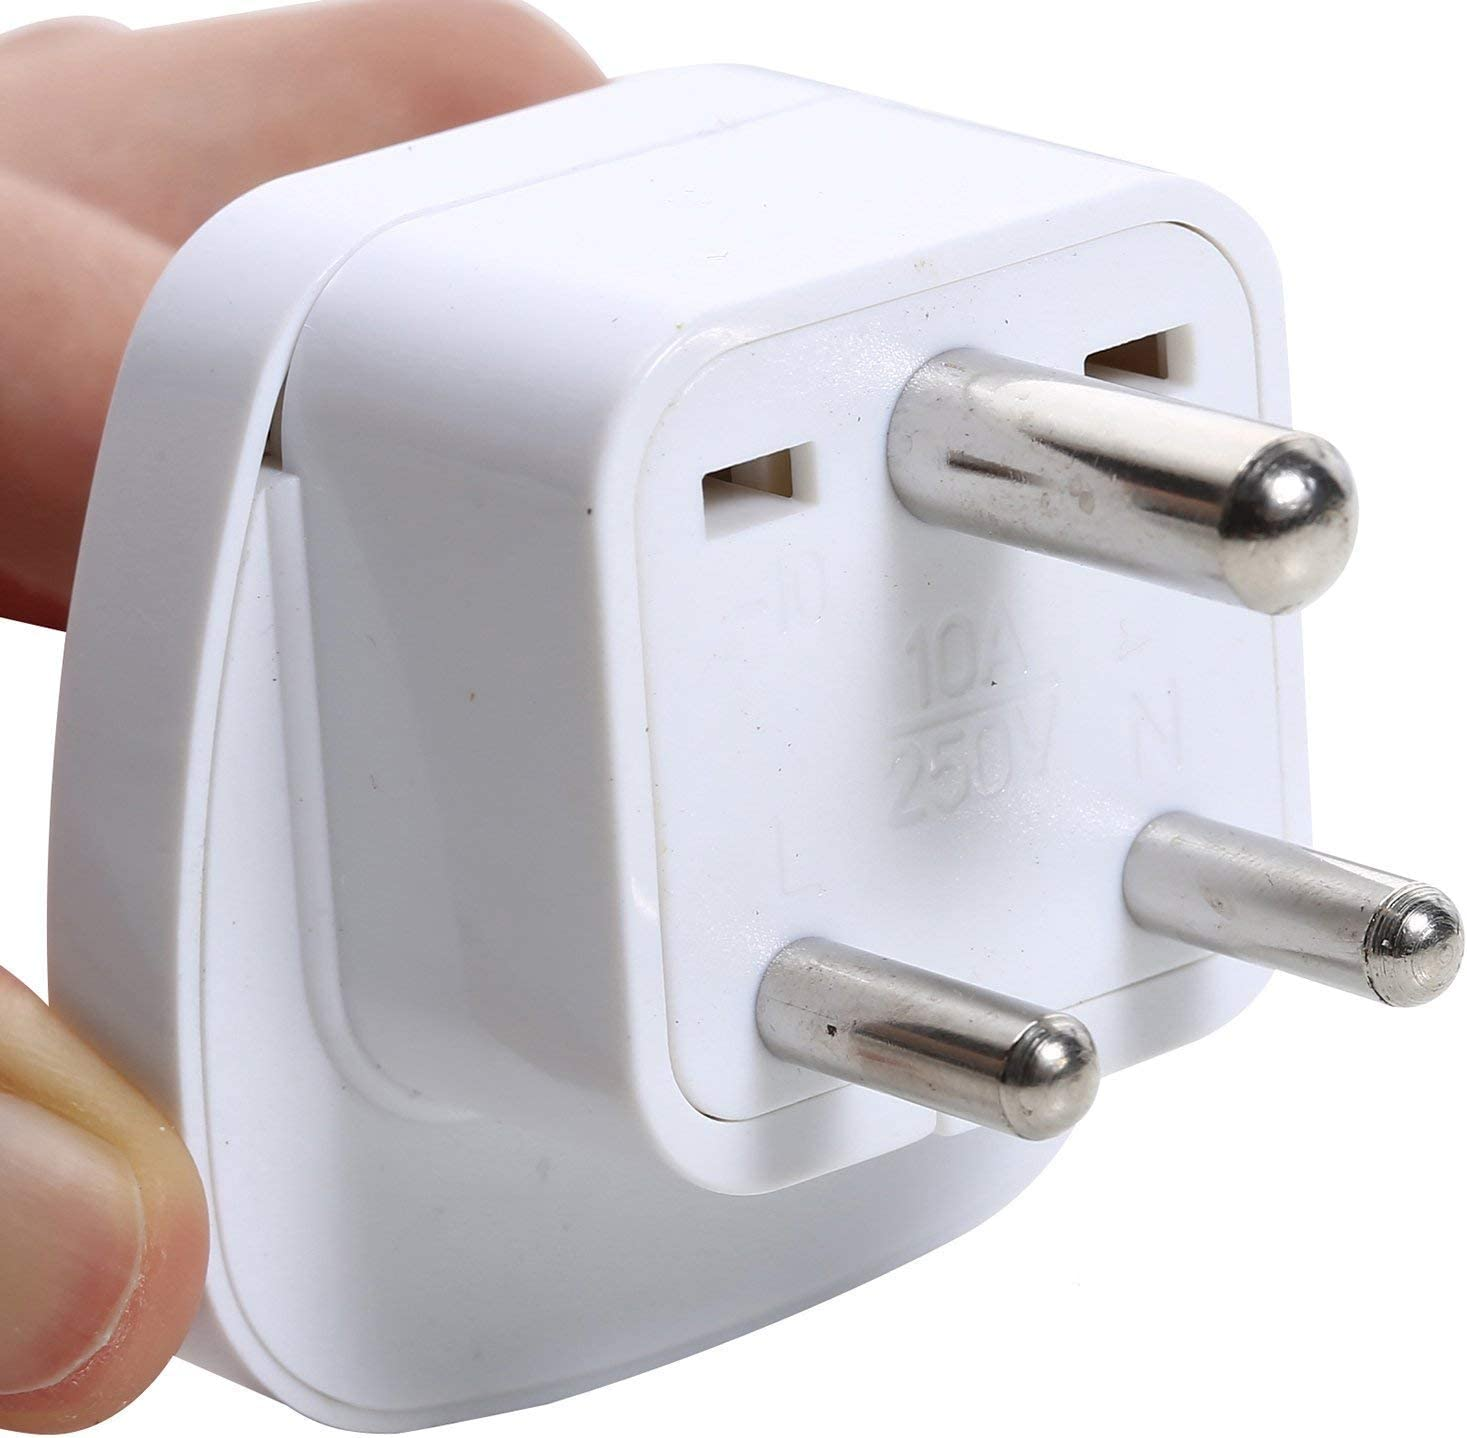 Type D Travel Plug Adapter Adaptor For India Nepal Pakistan Nepal Bhutan (pack Of 5) Mp3 Players & Accessories